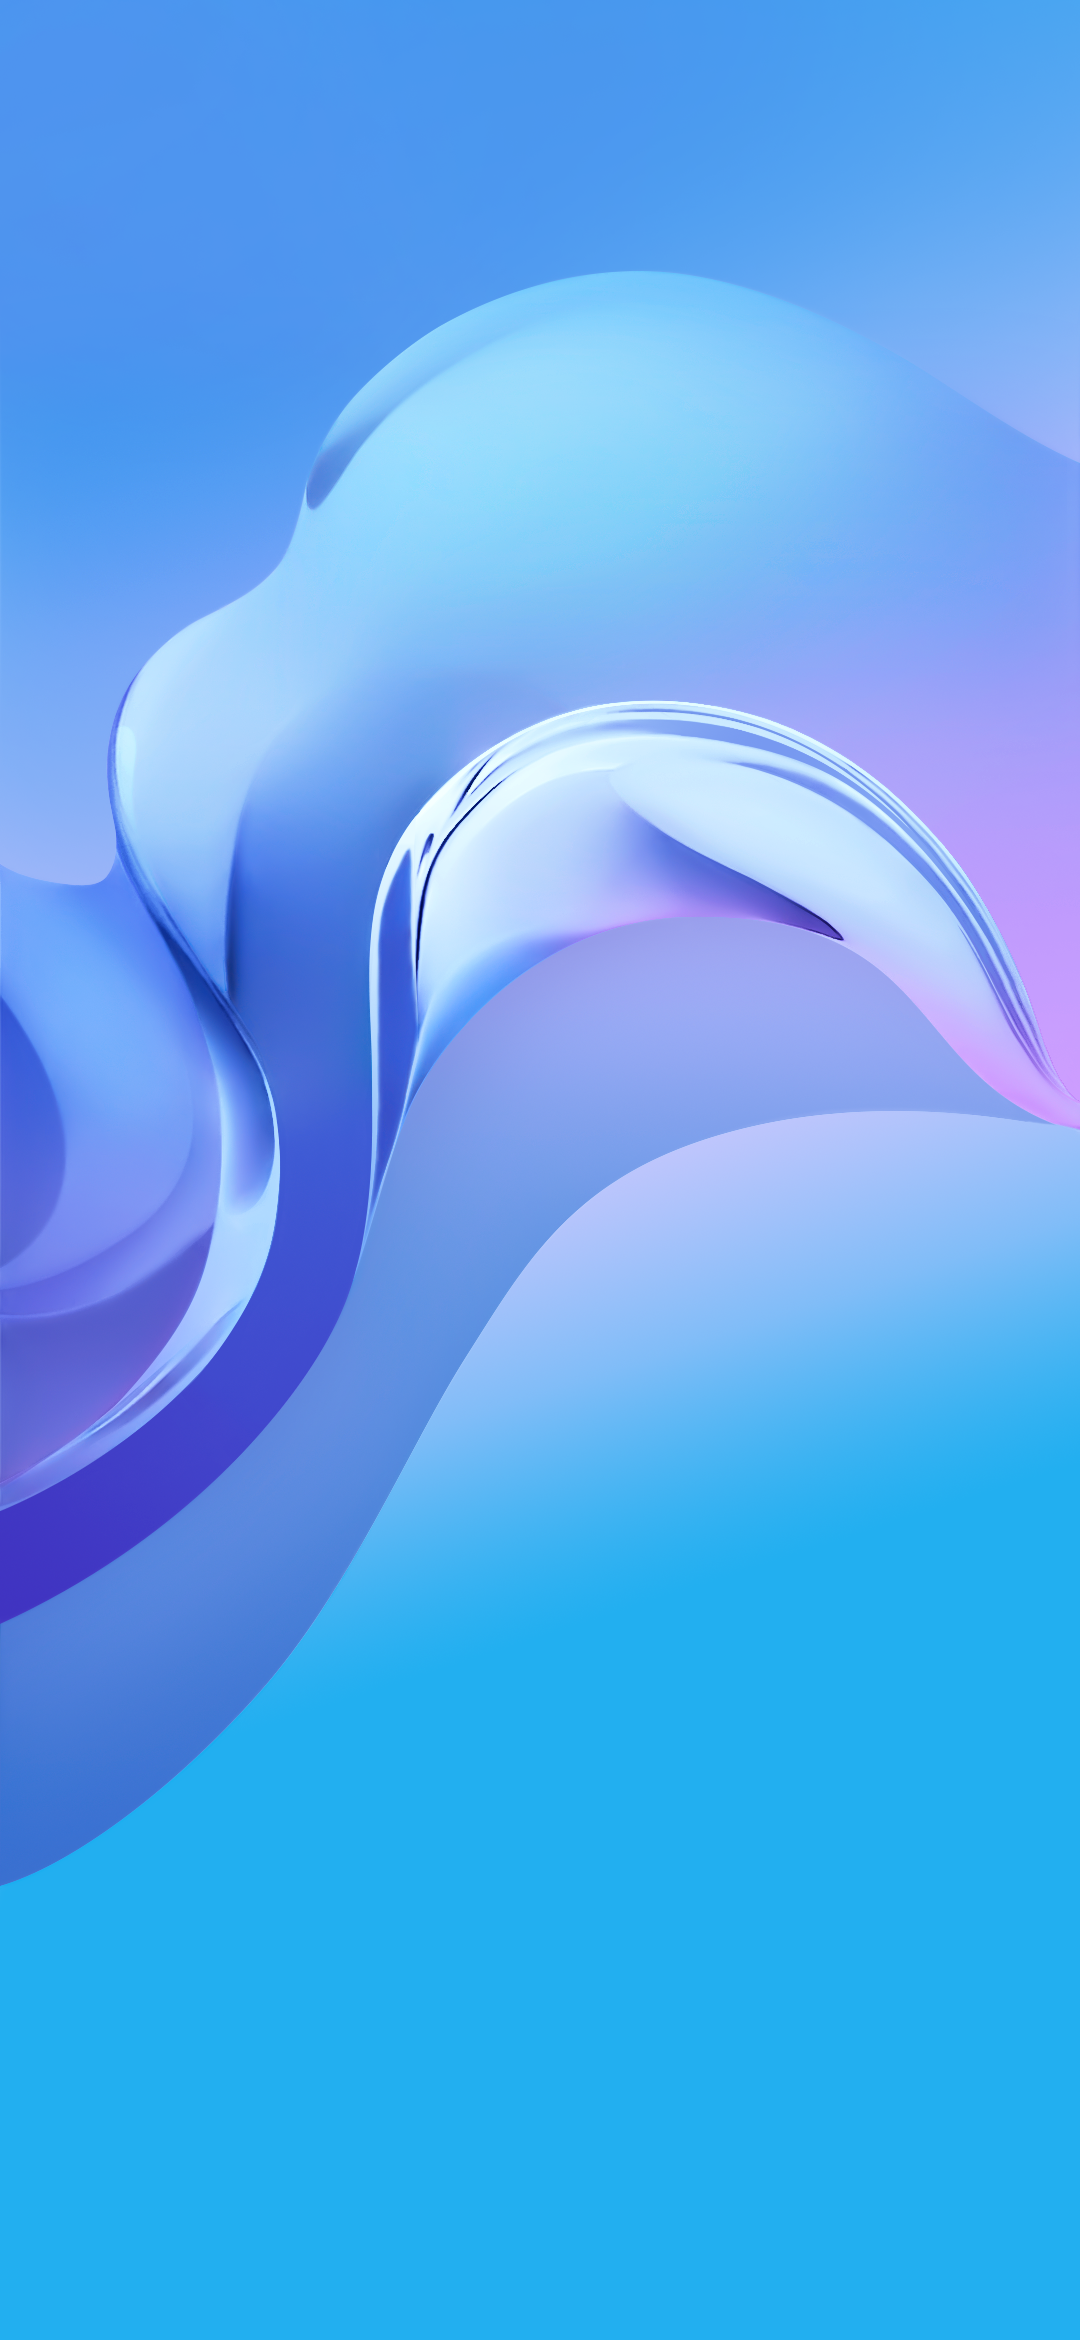 Vivo S1 Wallpaper (YTECHB Exclusive) Huawei wallpapers